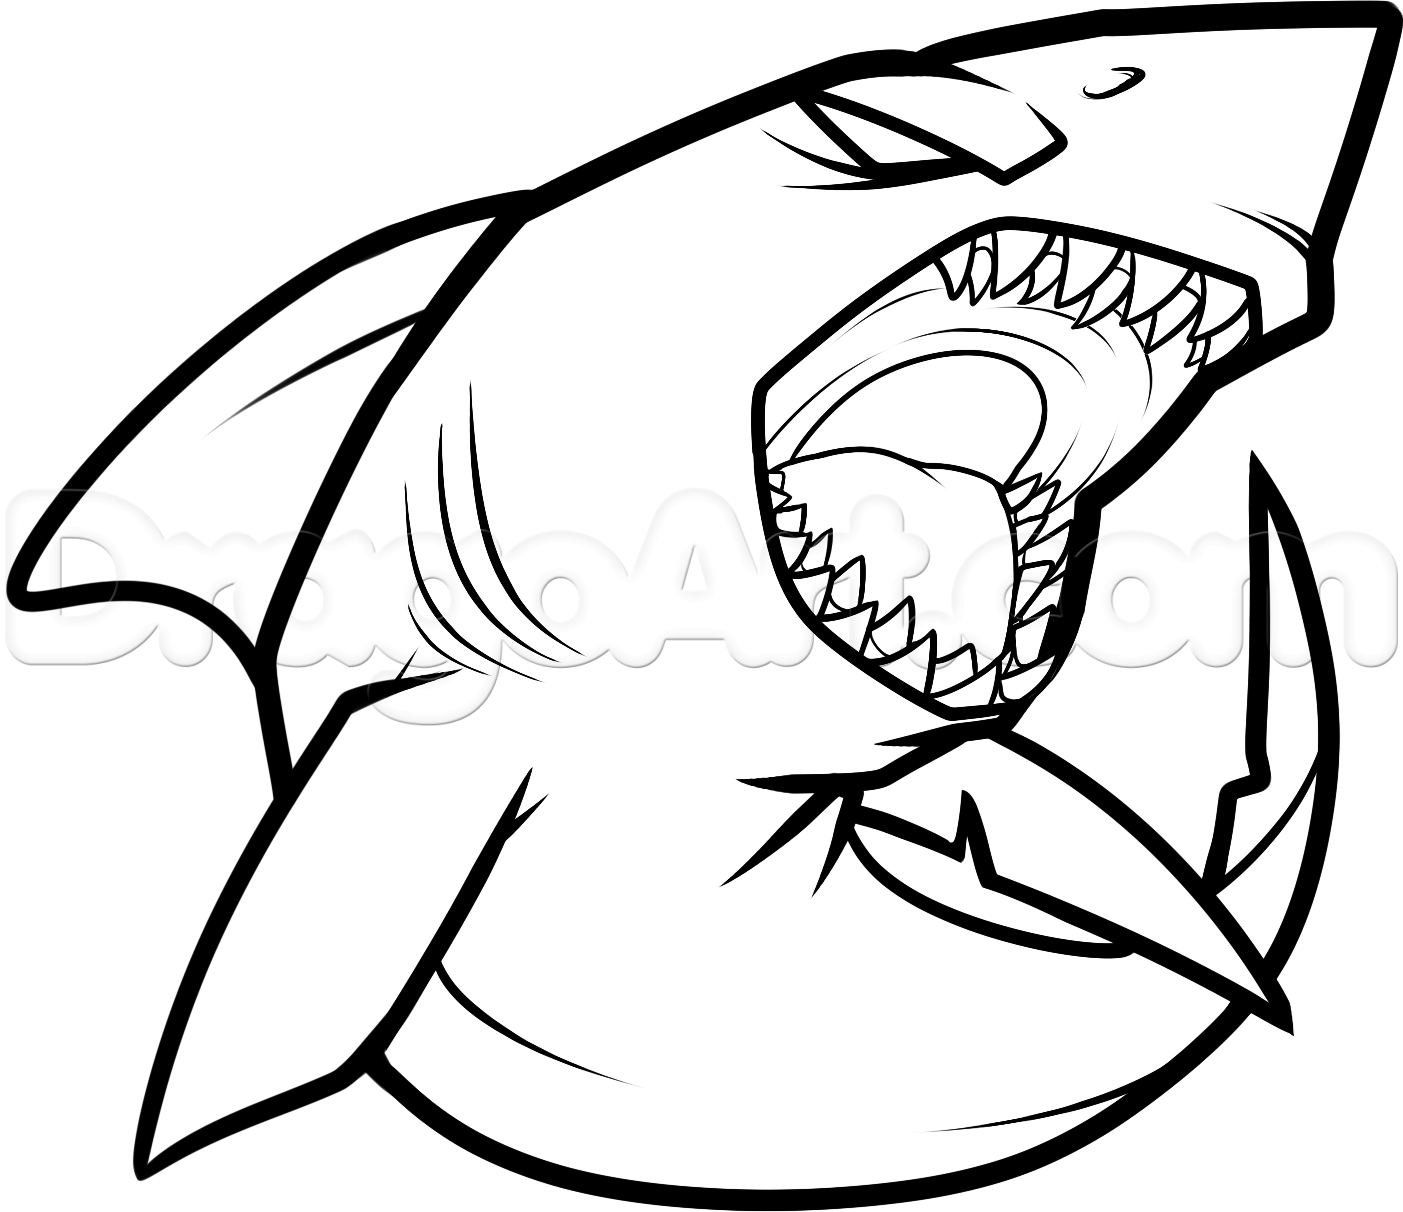 1403x1212 how to draw a cool shark step 7 Crafty things Pinterest - Shark Bite Mark PNG